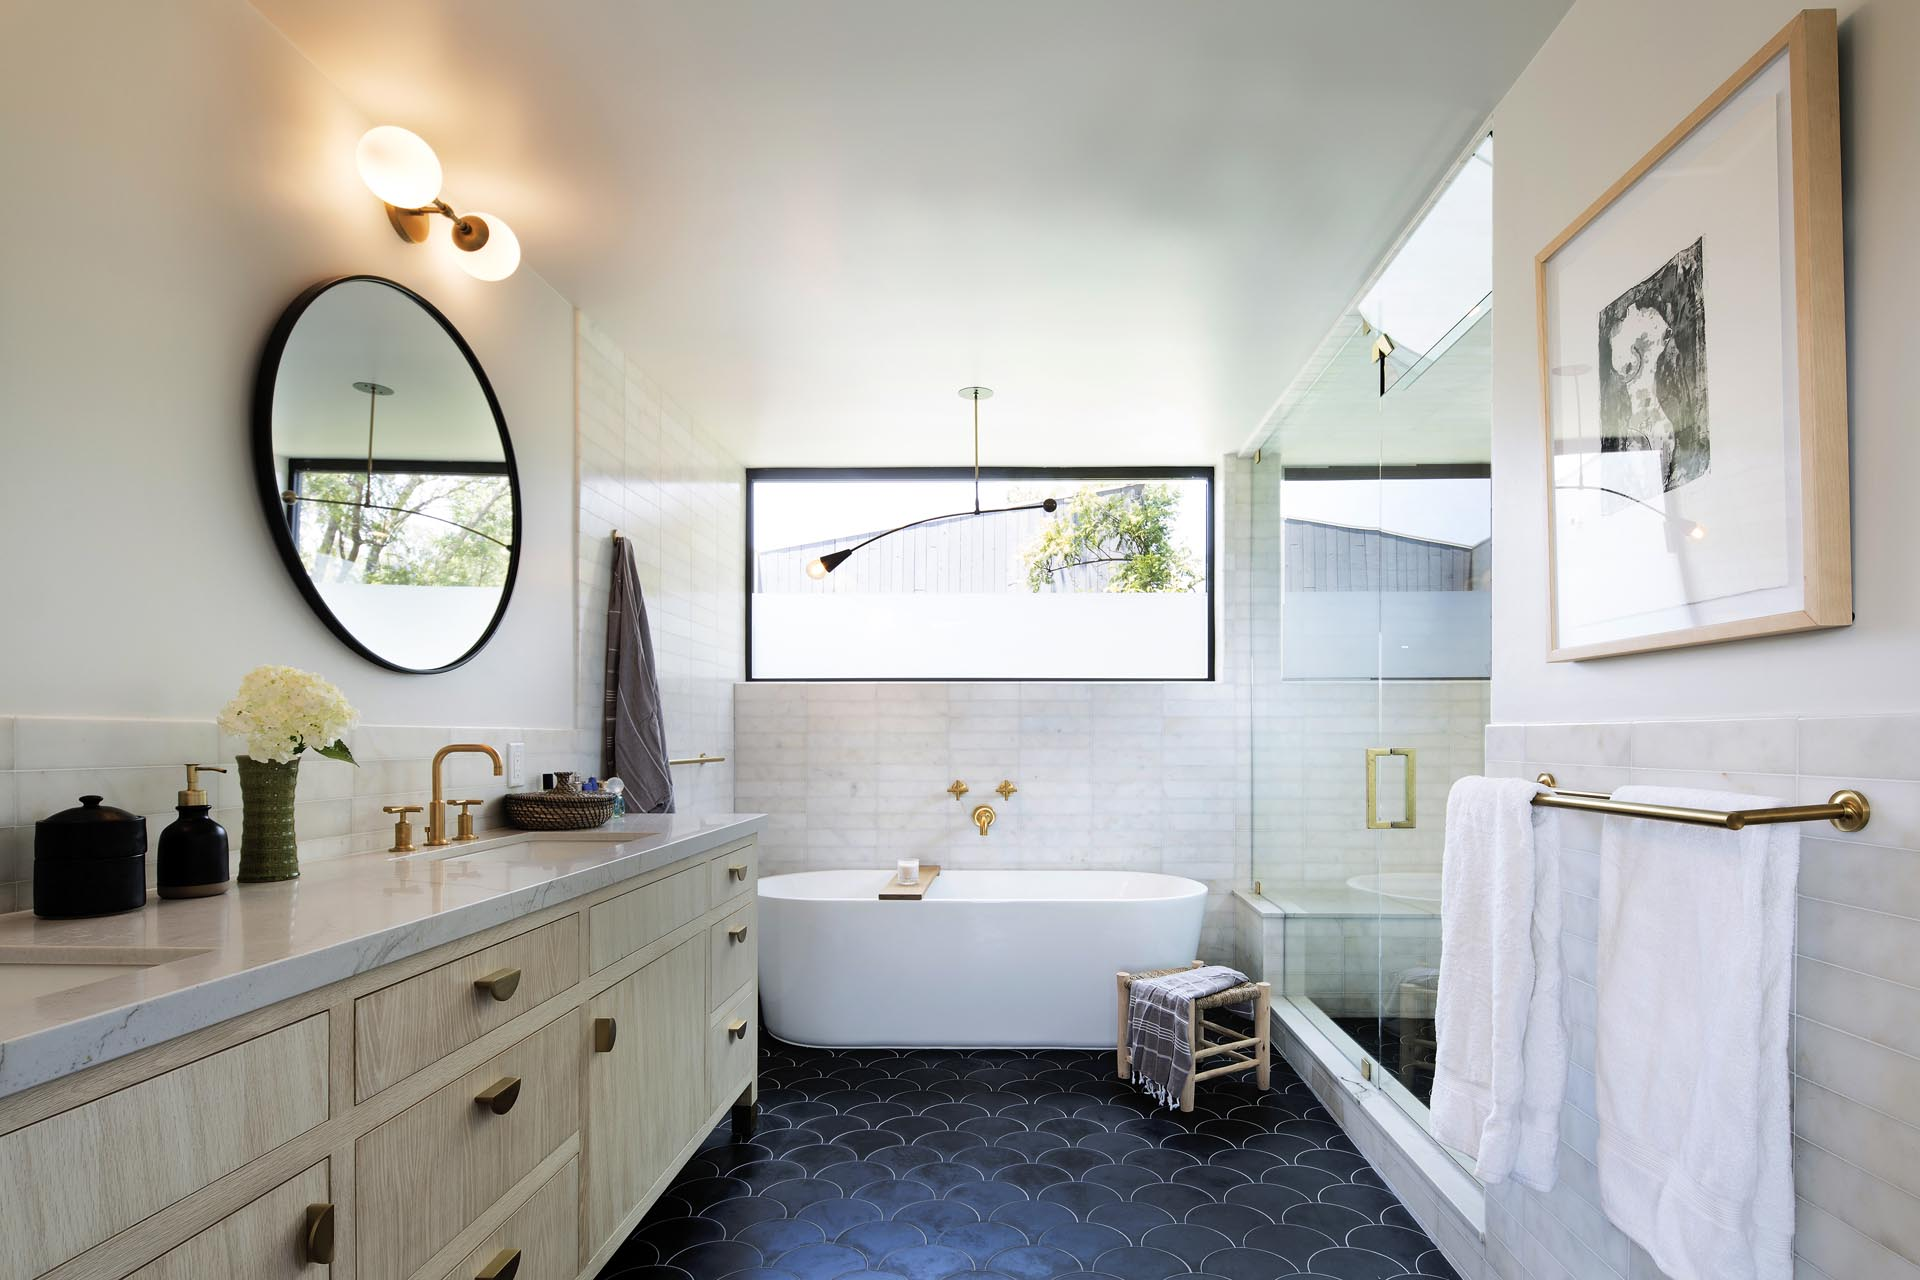 In this modern bathroom there's a double sink vanity with round mirrors, a freestanding bathtub, and a glass enclosed shower.